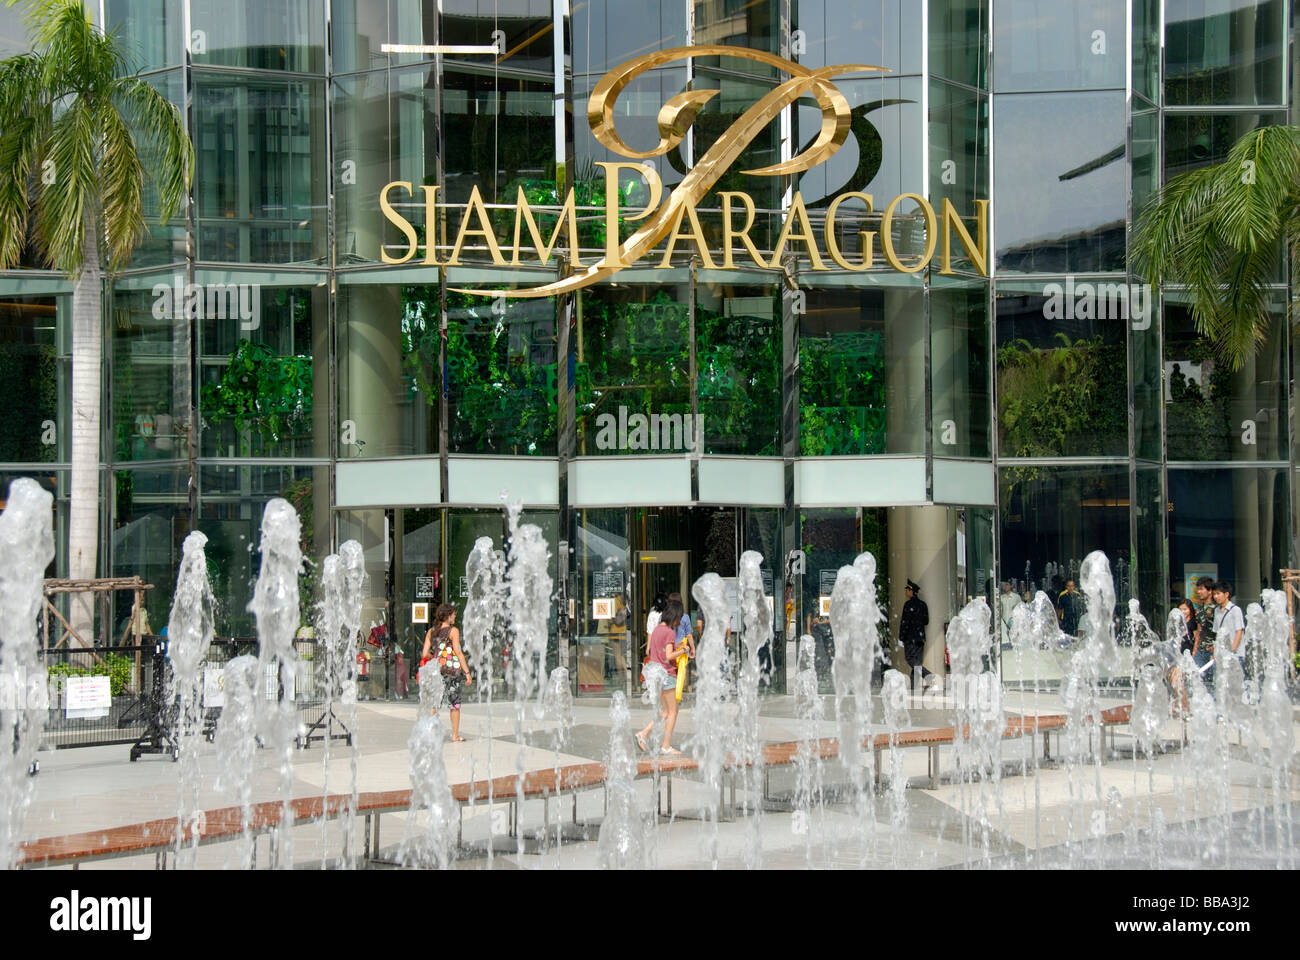 fountain-in-front-glass-facade-of-the-siam-paragon-shopping-center-BBA3J2